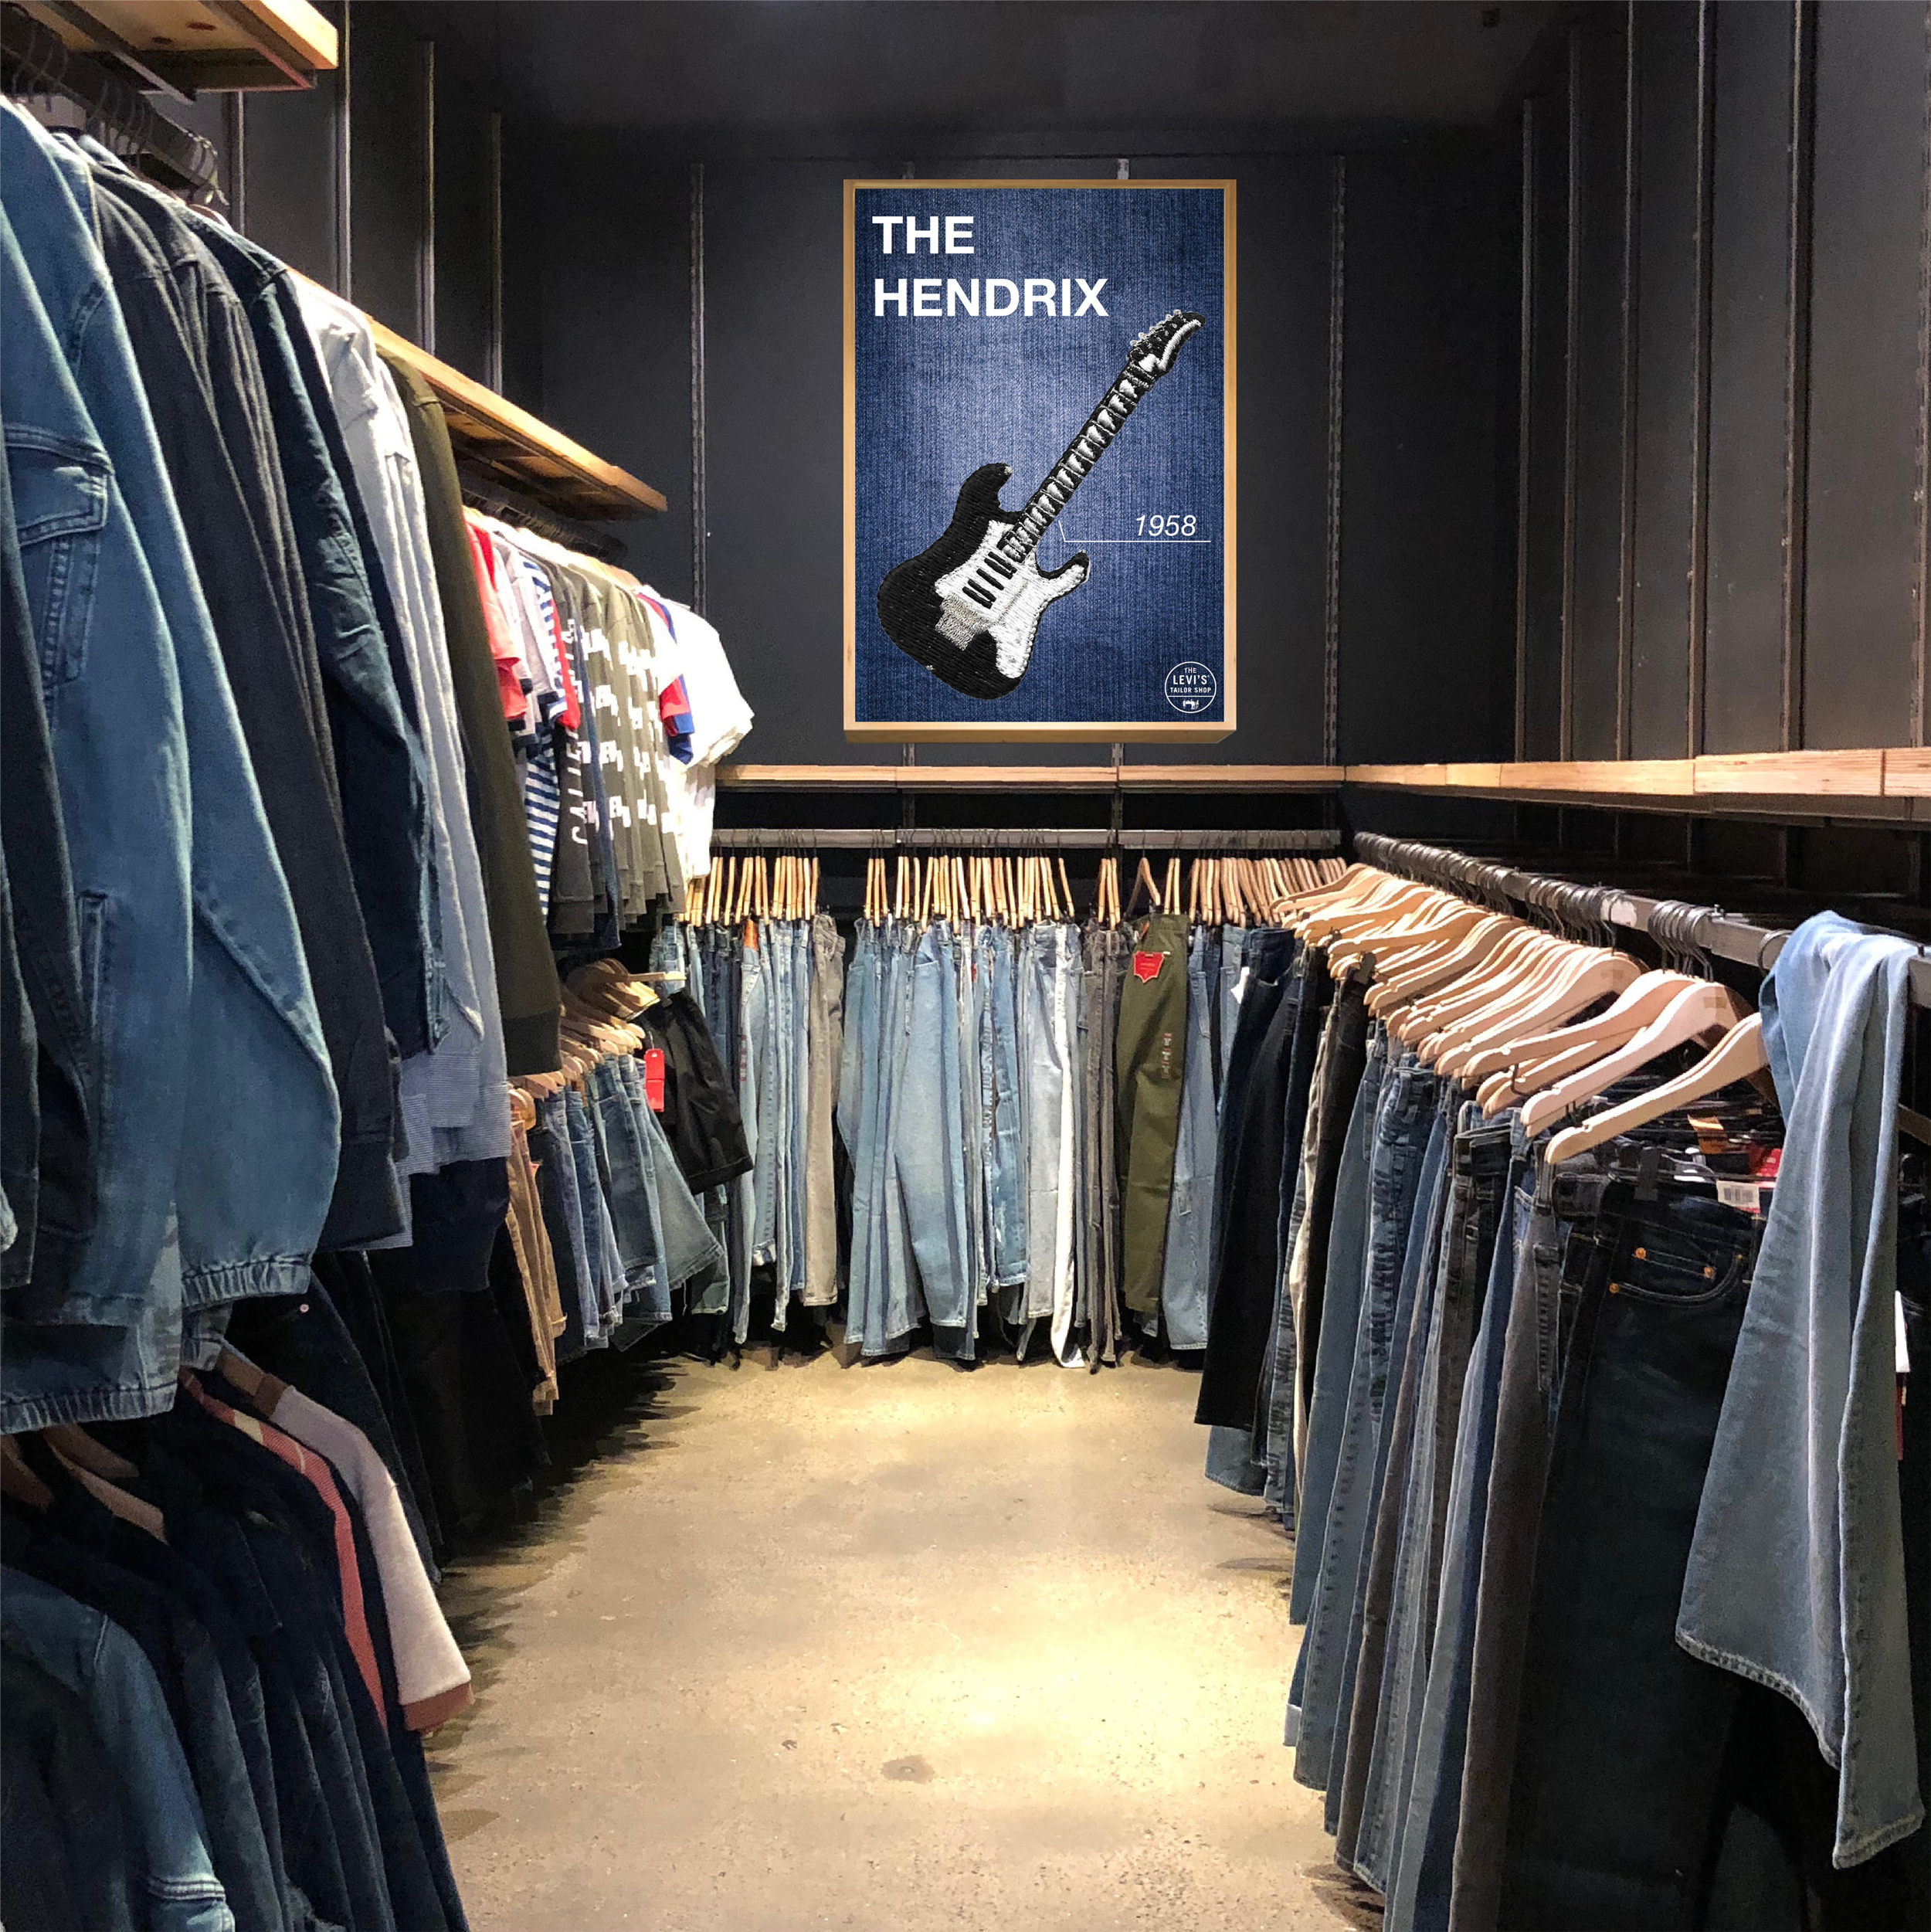 THE_HENDRIX_(in store)-01 copy.png